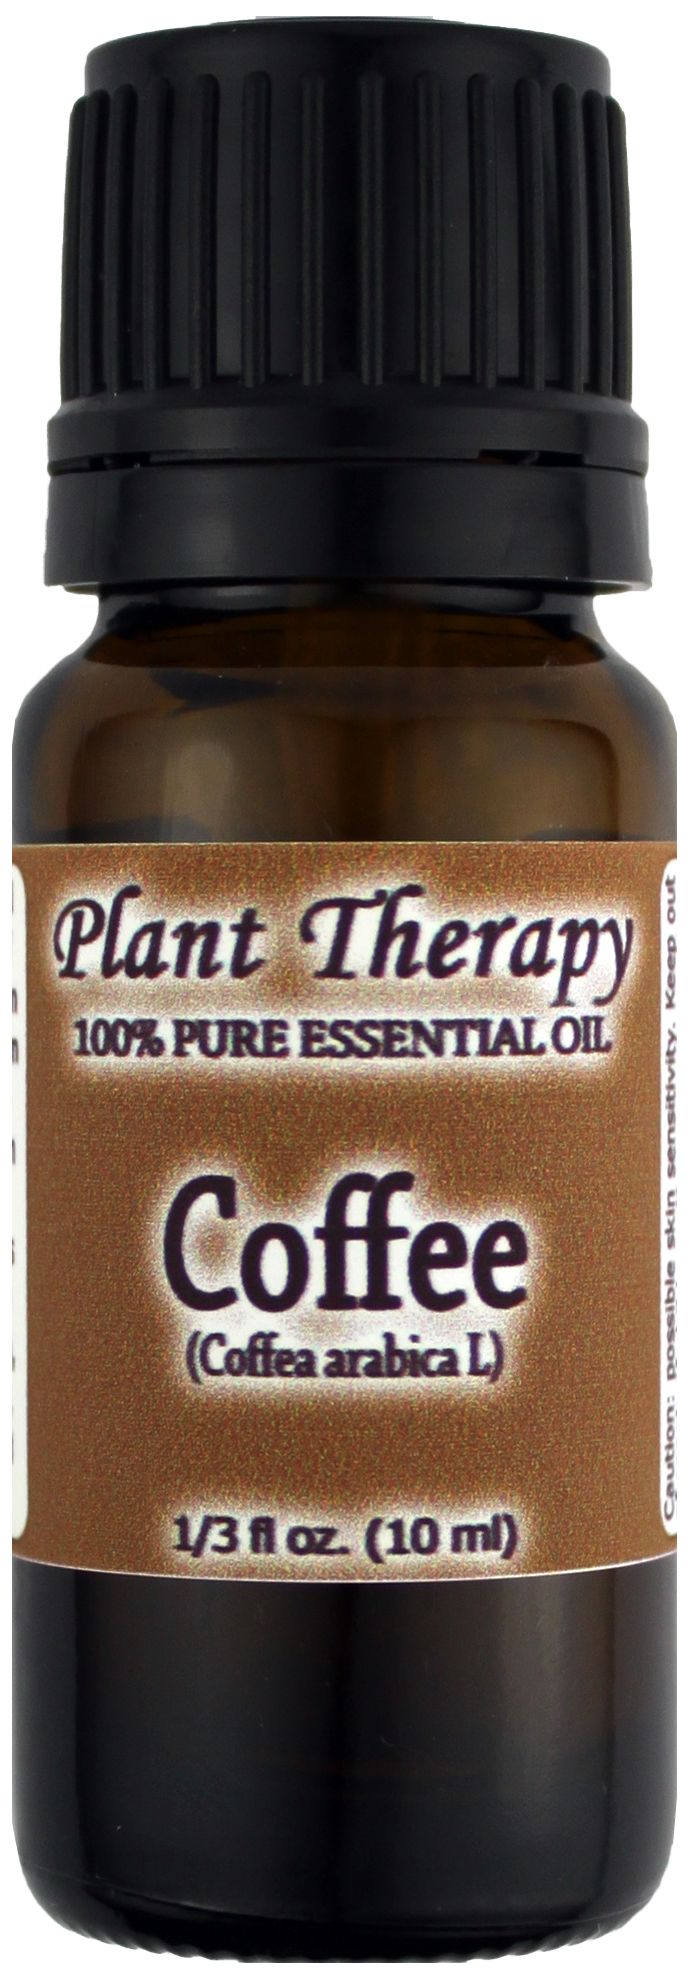 Coffee Essential Oil - $13.99 : Pure Essential Oils | Aromatherapy Nebulizers | Oil Diffusers---- Mmmmm.... this sounds delicious! Definitely on my Wish List...